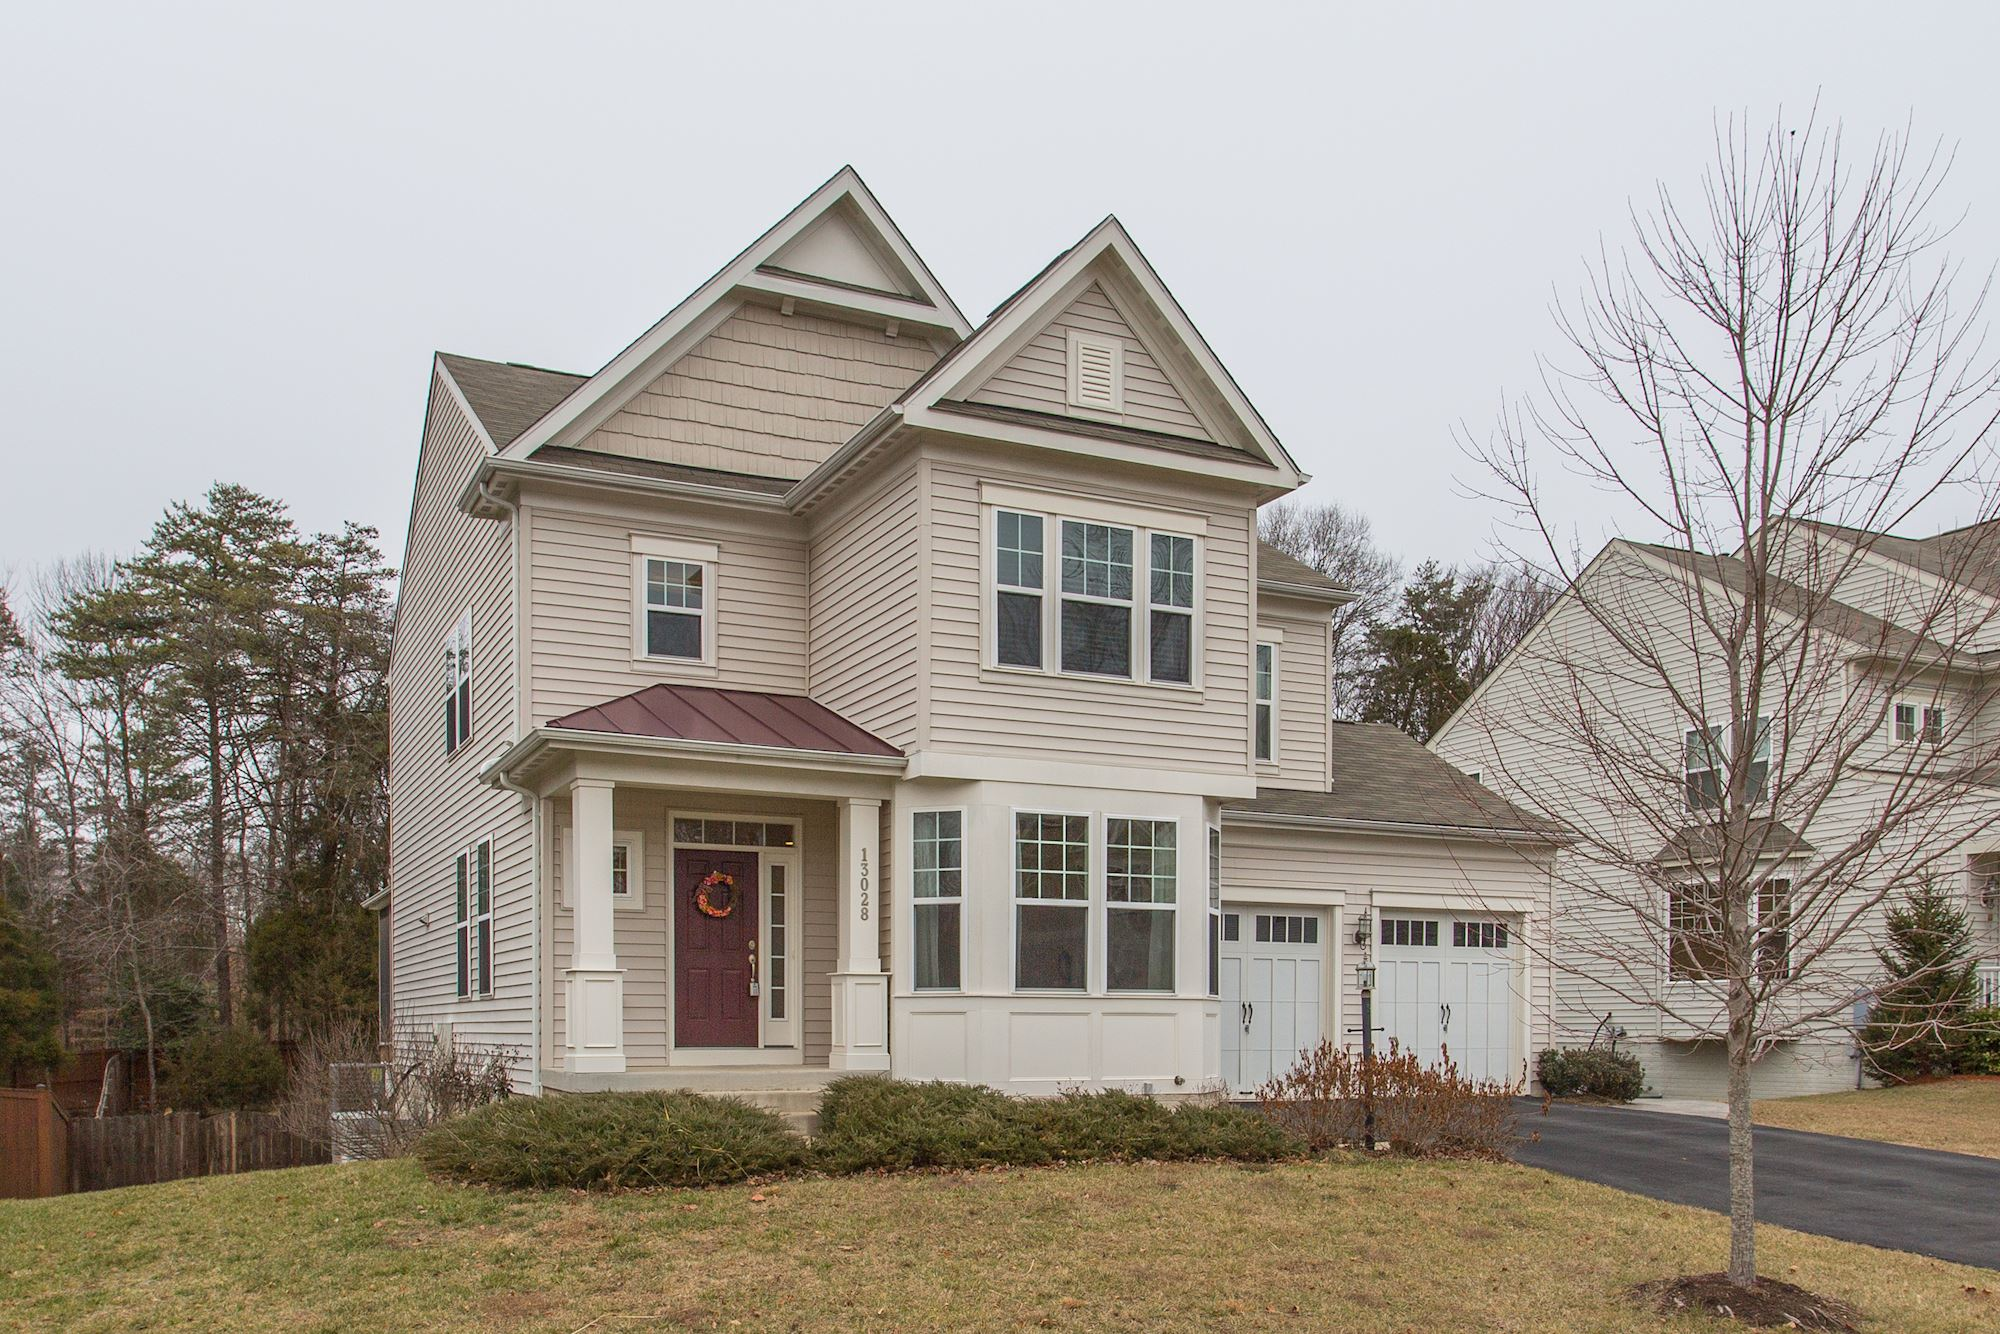 SOLD: 4 Bedroom Charming Colonial in Manassas